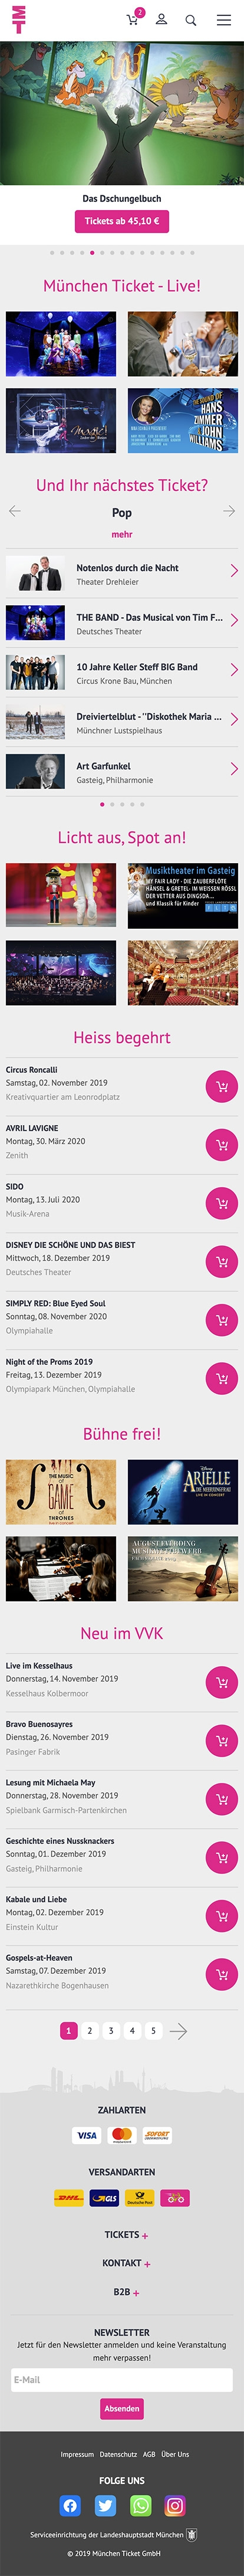 München Ticket | muenchenticket.de | 2019 (Phone Full Scroll) © echonet communication